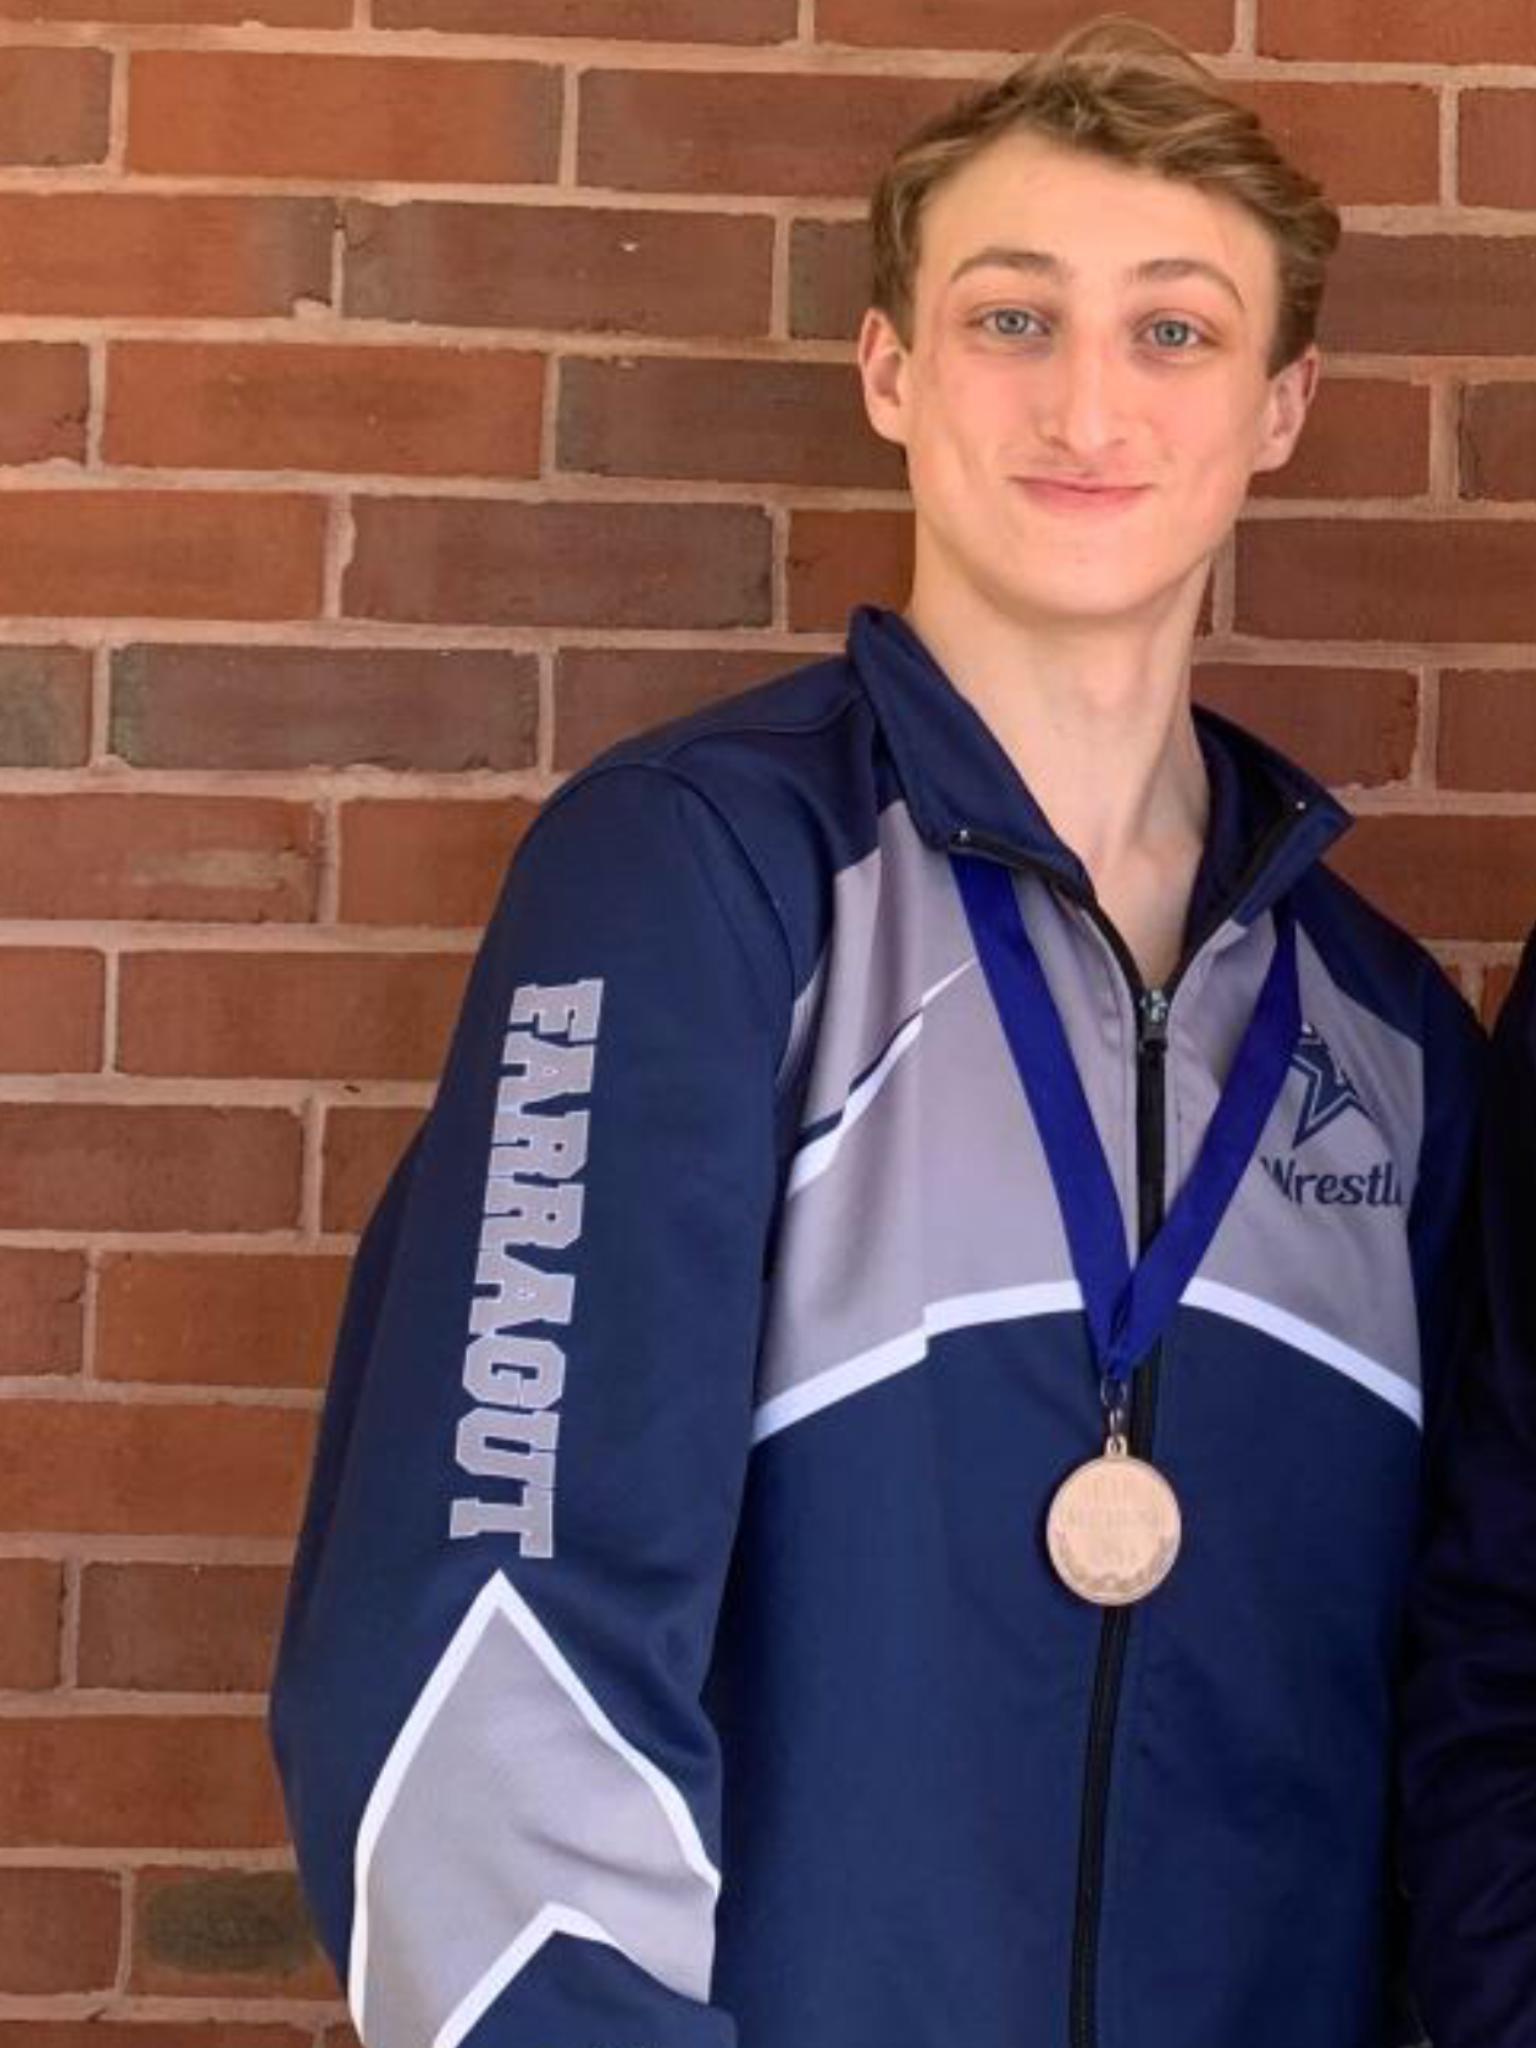 Student Athlete of the Week: Connor Lyons